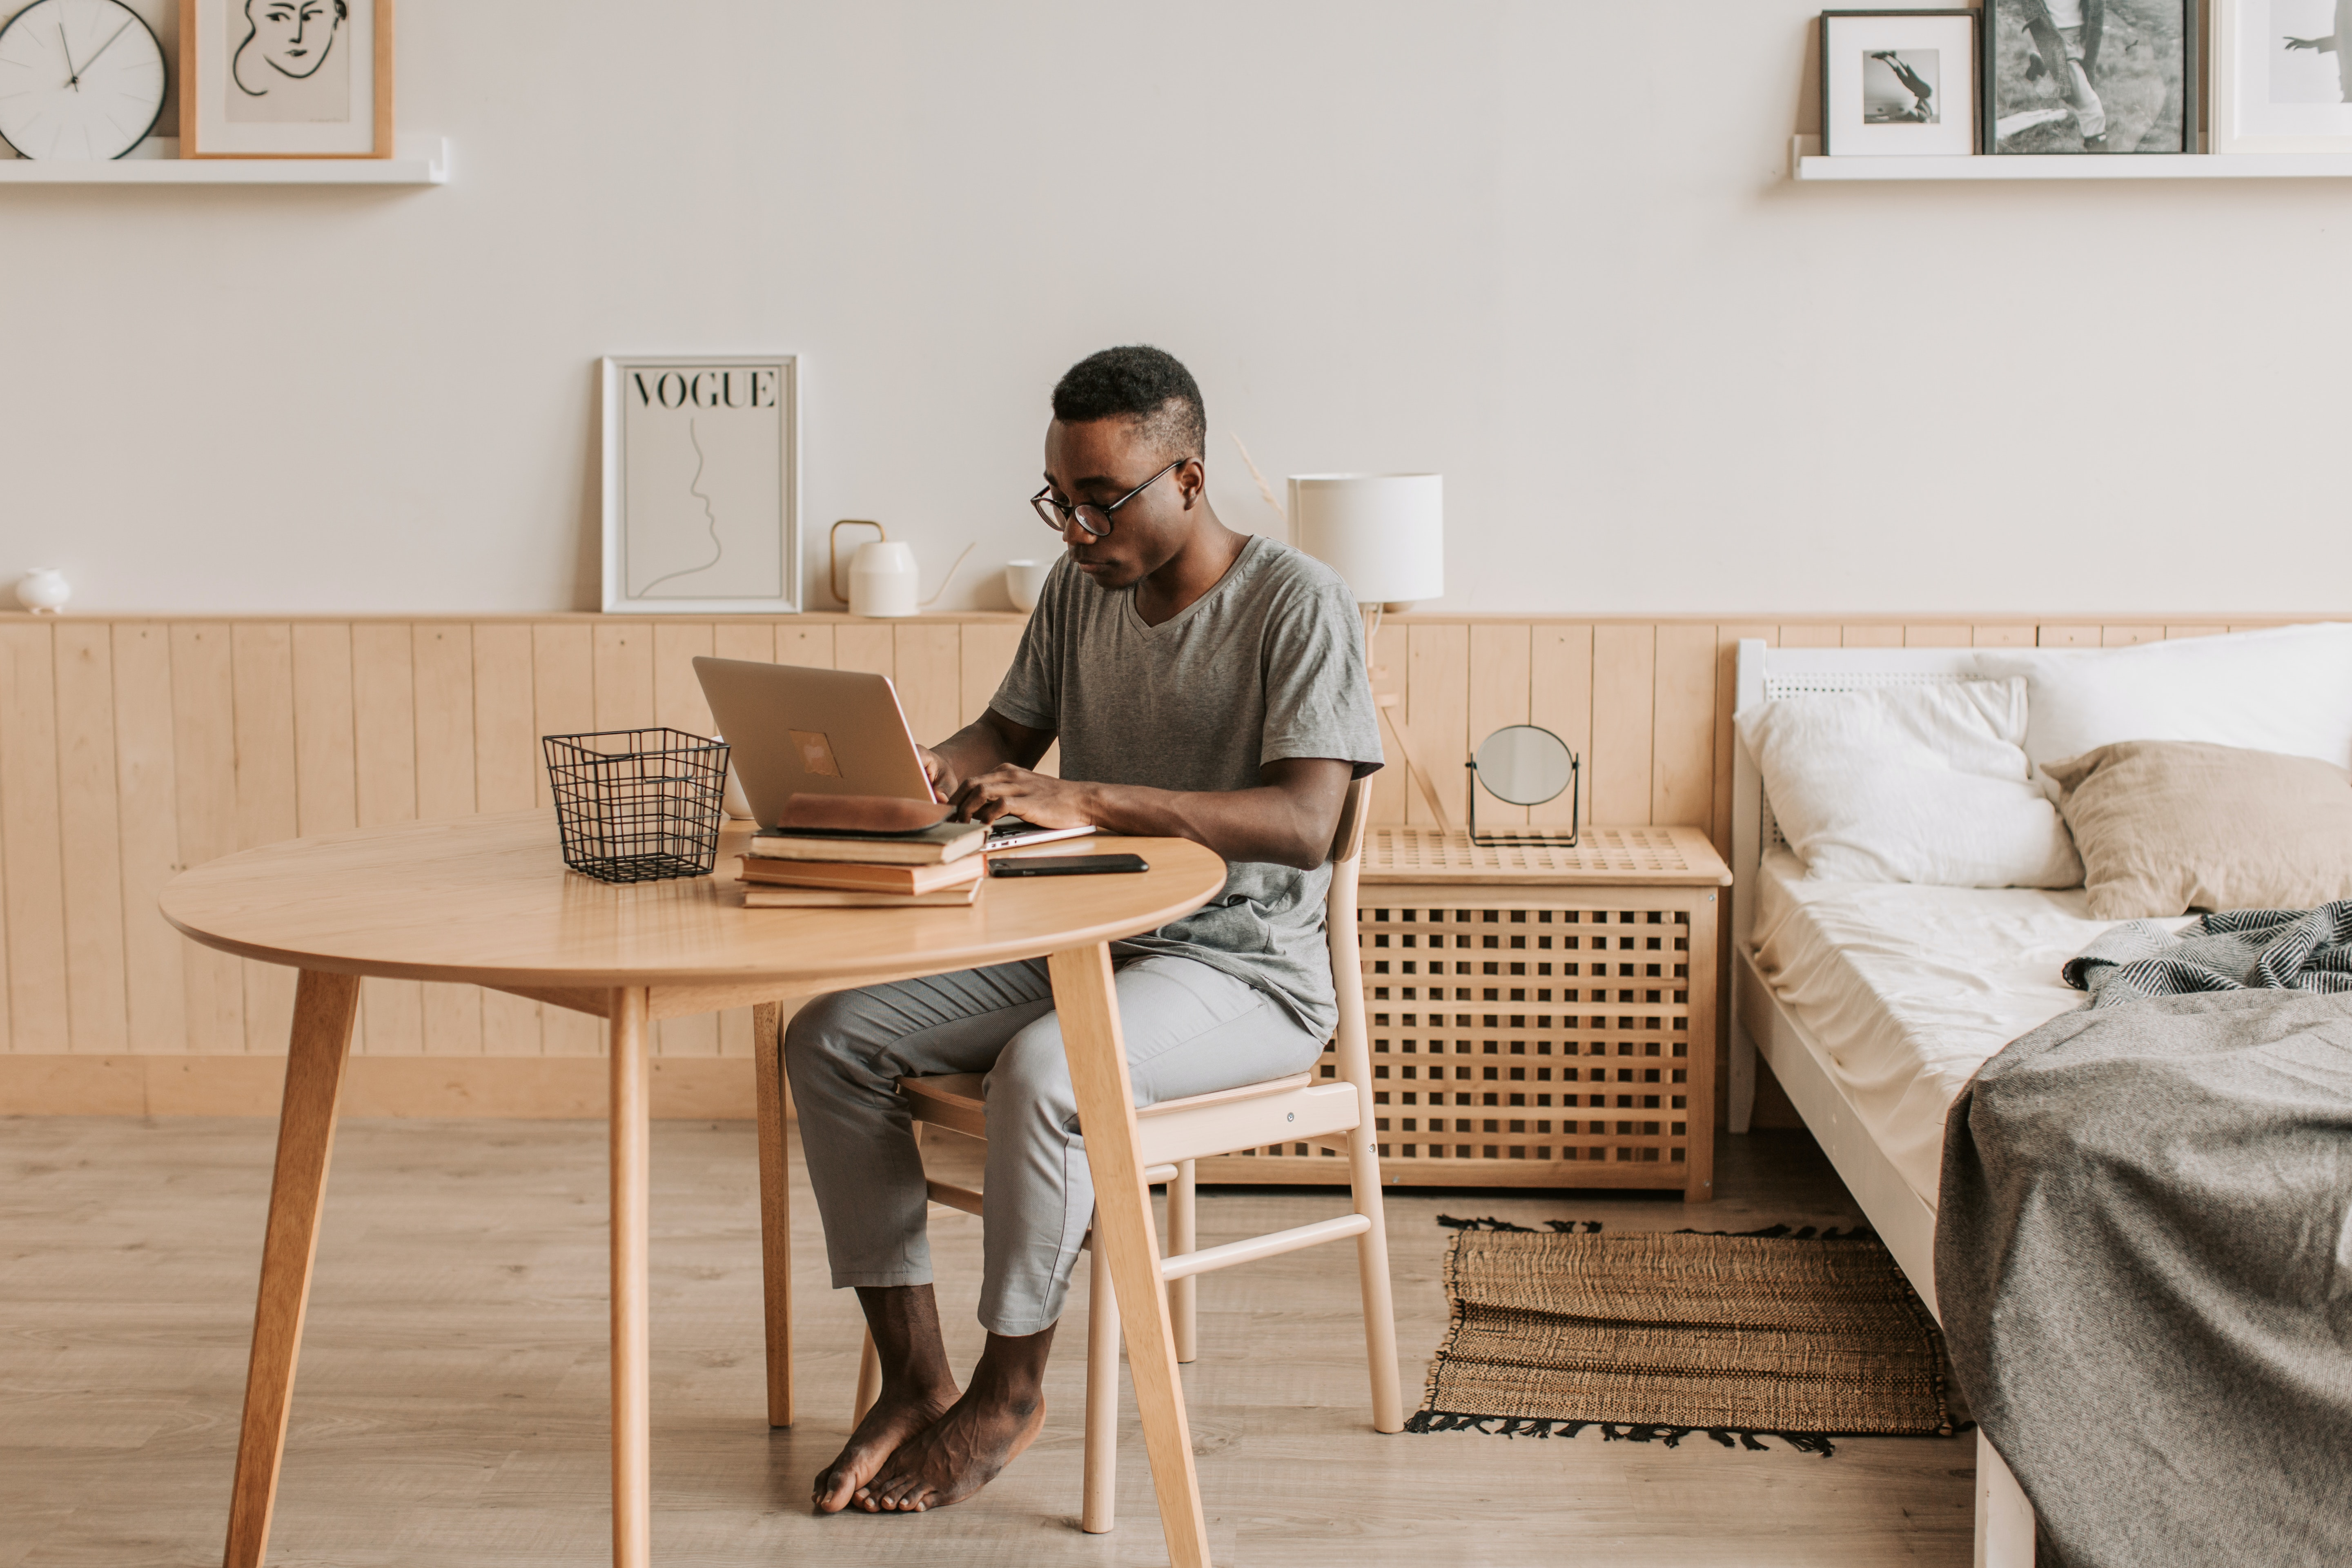 mini guide to onboarding employees remotely